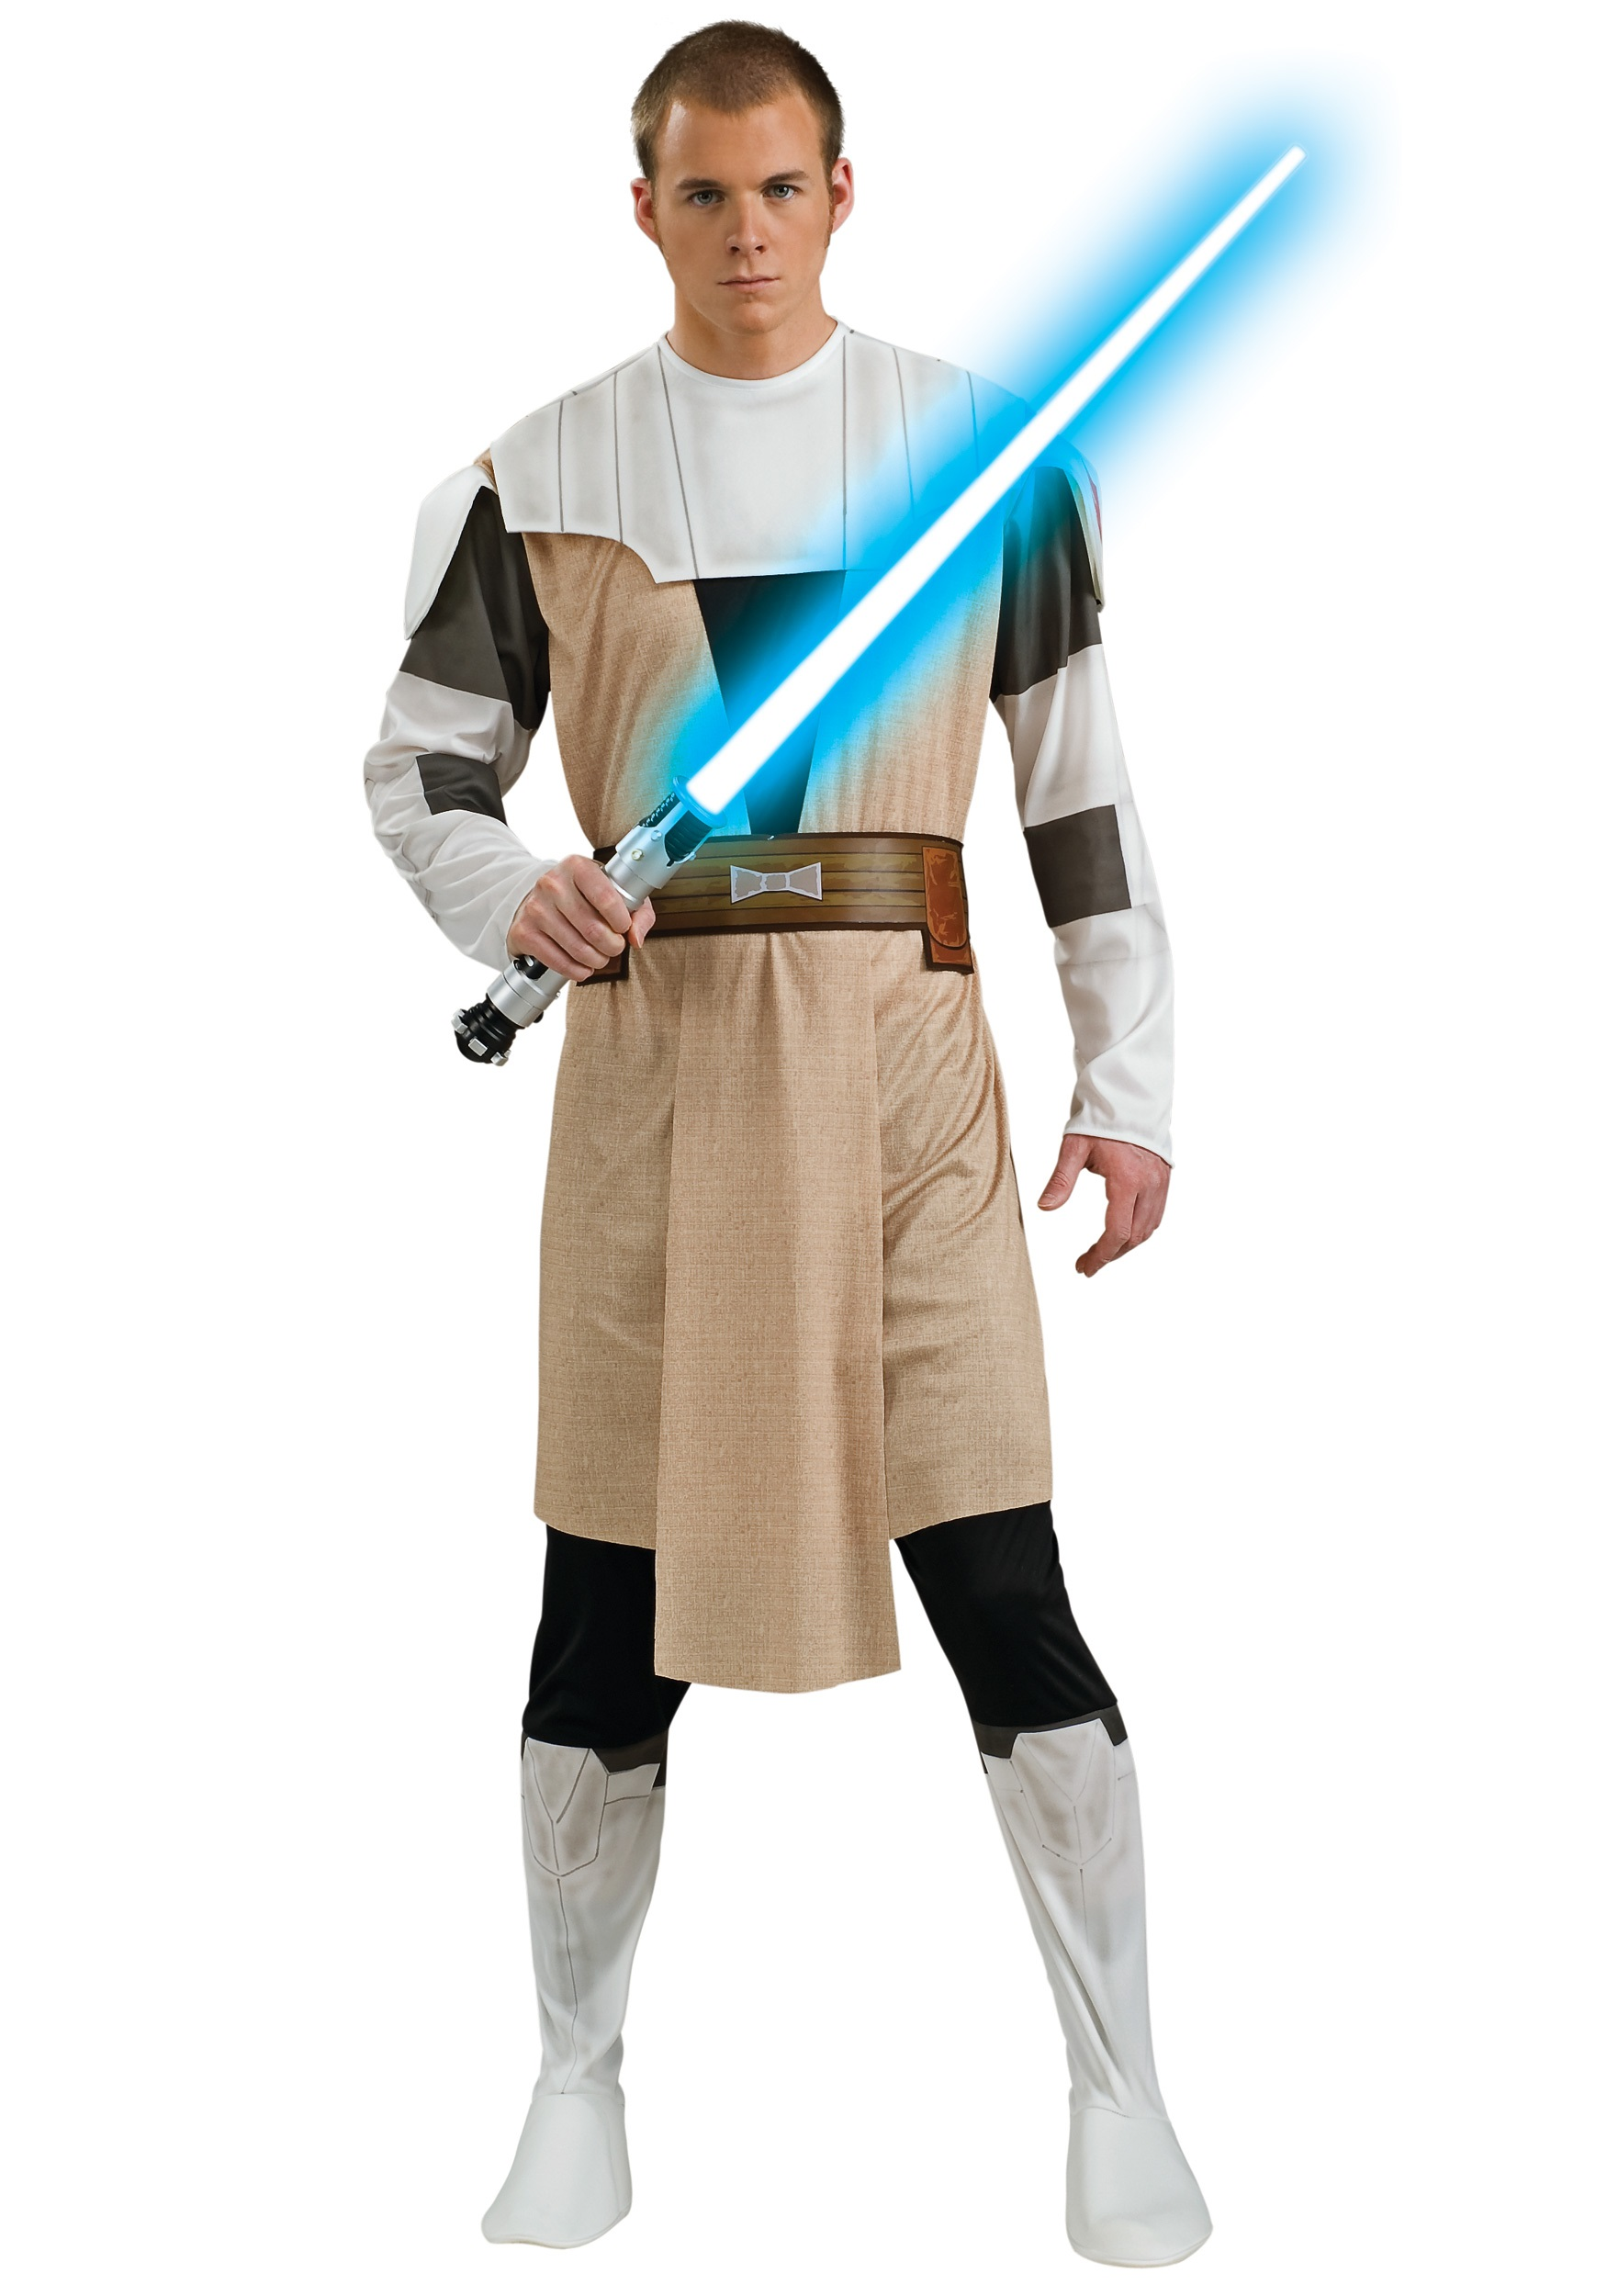 Adult Star Wars Obi-Wan Kenobi Jedi Knight Suits Cloak Cosplay Complete Costume